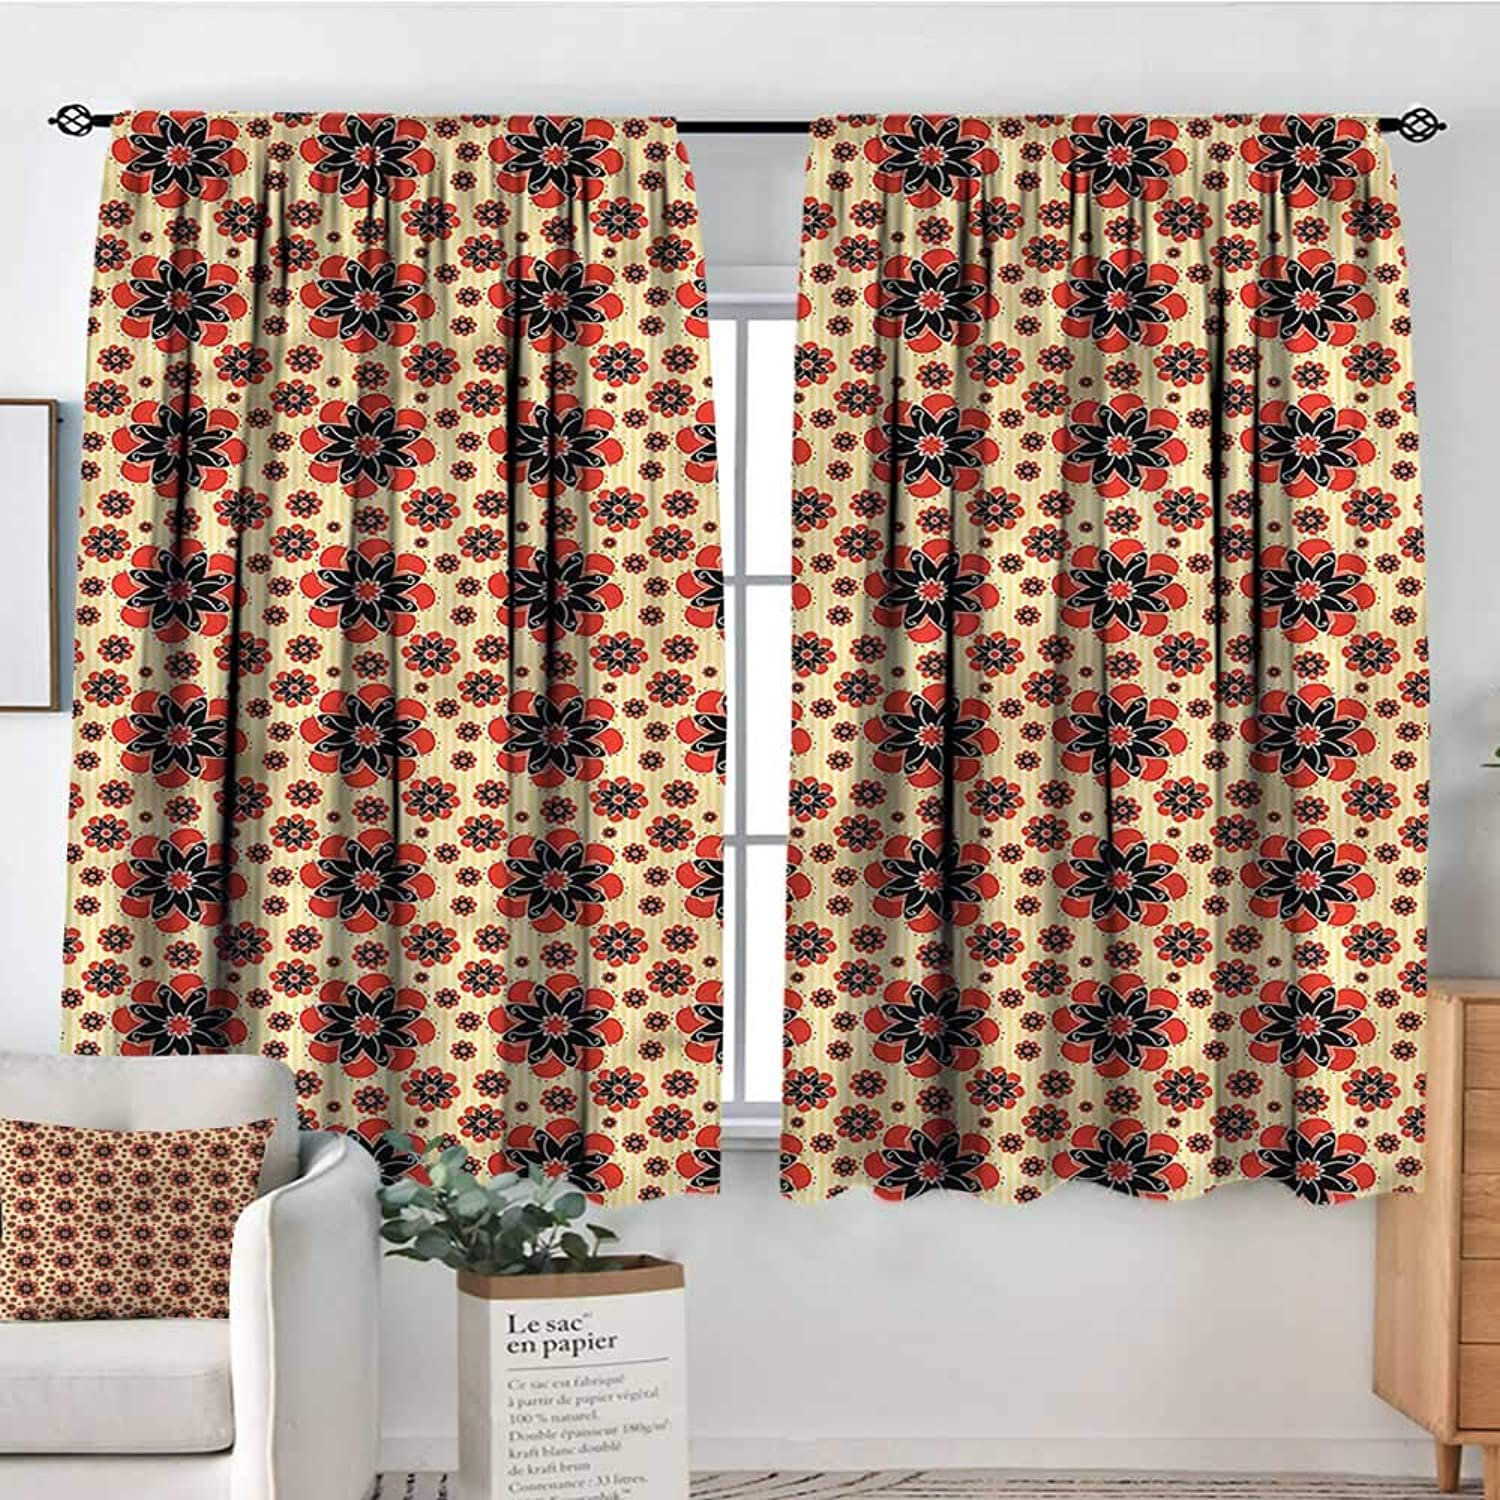 Familytaste Yellow and Red,Indo Panes Drapes greenical Lines Retro 42 X72  Kids Backout Curtains for Bedroom